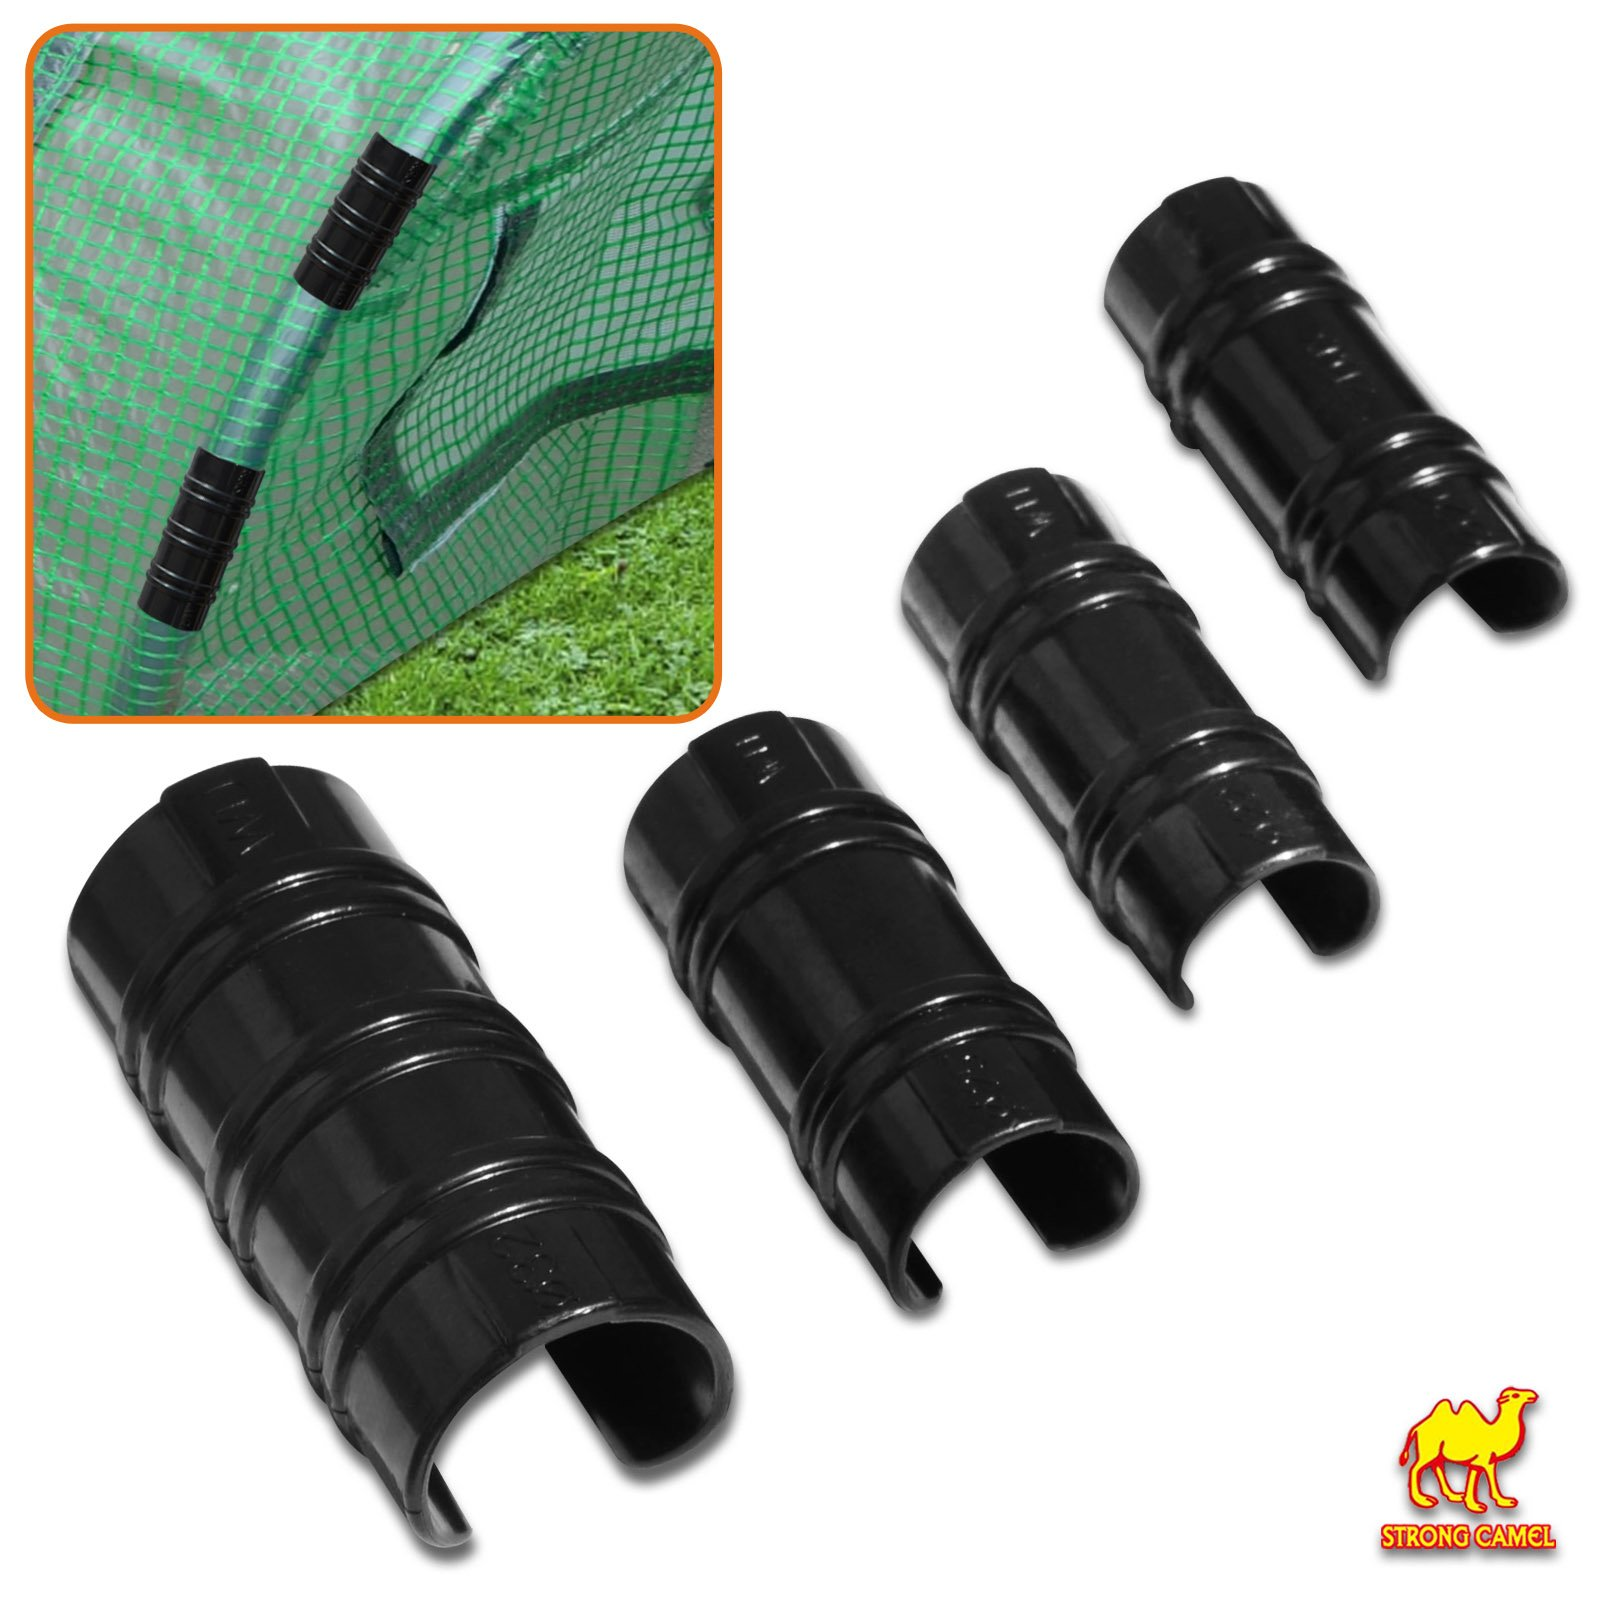 Strong Camel ABS Snap Clamp 1-1/4 inch x 3-1/8 Wide for 1-1/4 inch Pipe to Secure Plastic/ Fabric Attach Greenhouse Row Cover Shade (10pcs)